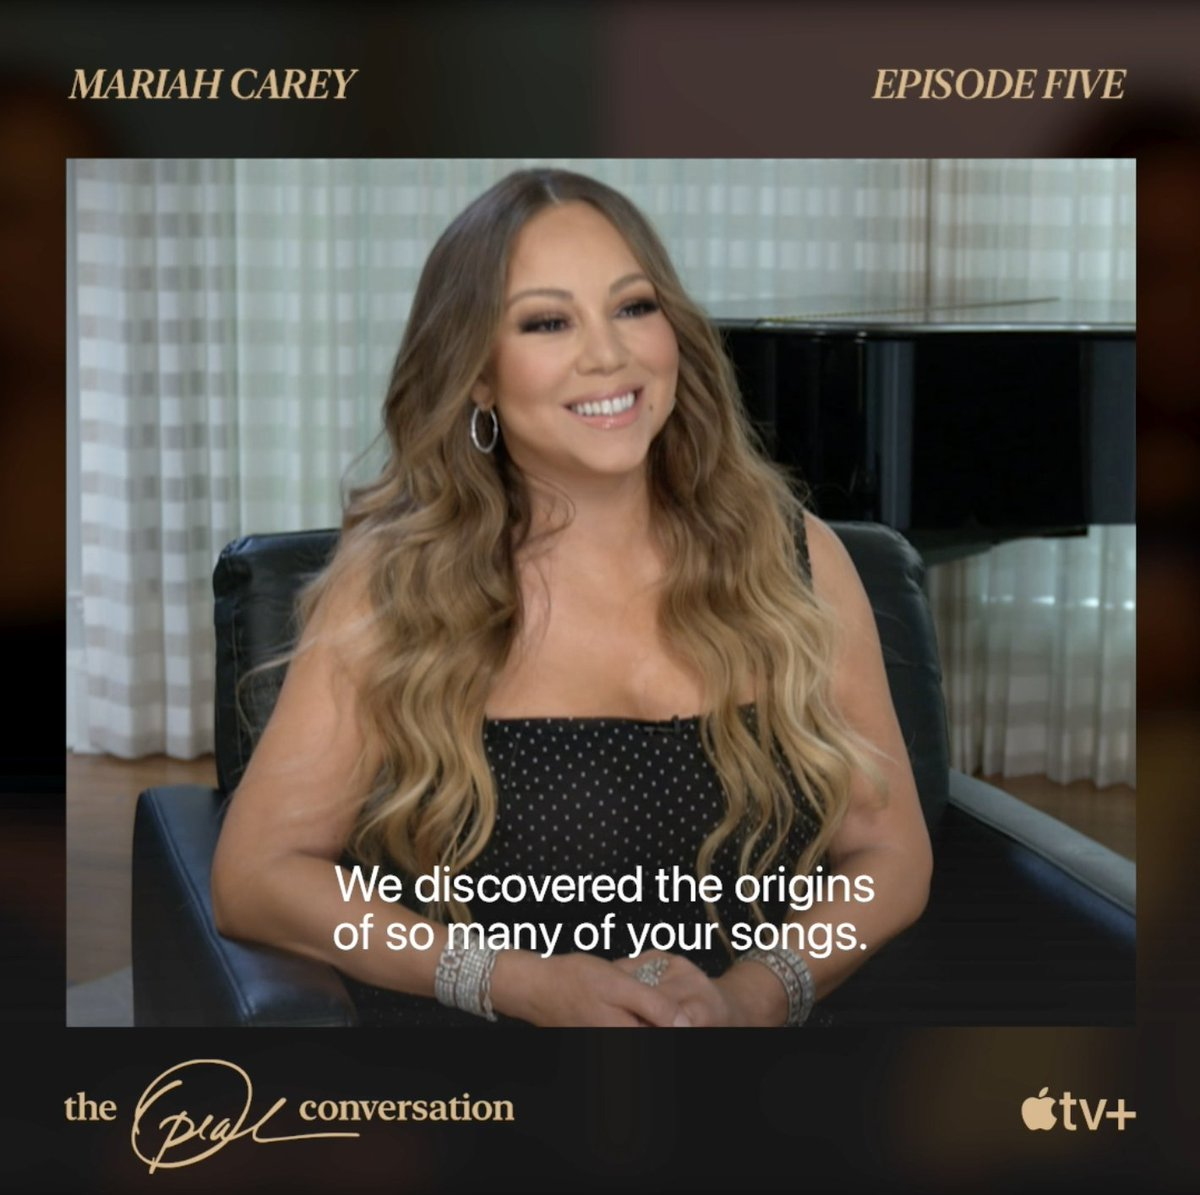 Trauma, triumph, and tough times, the icon herself, @MariahCarey joins @Oprah for an episode of #TheOprahConversation you don't want to miss.   Watch the full episode tomorrow, only on Apple TV+. https://t.co/Gt1WPZe5Zr